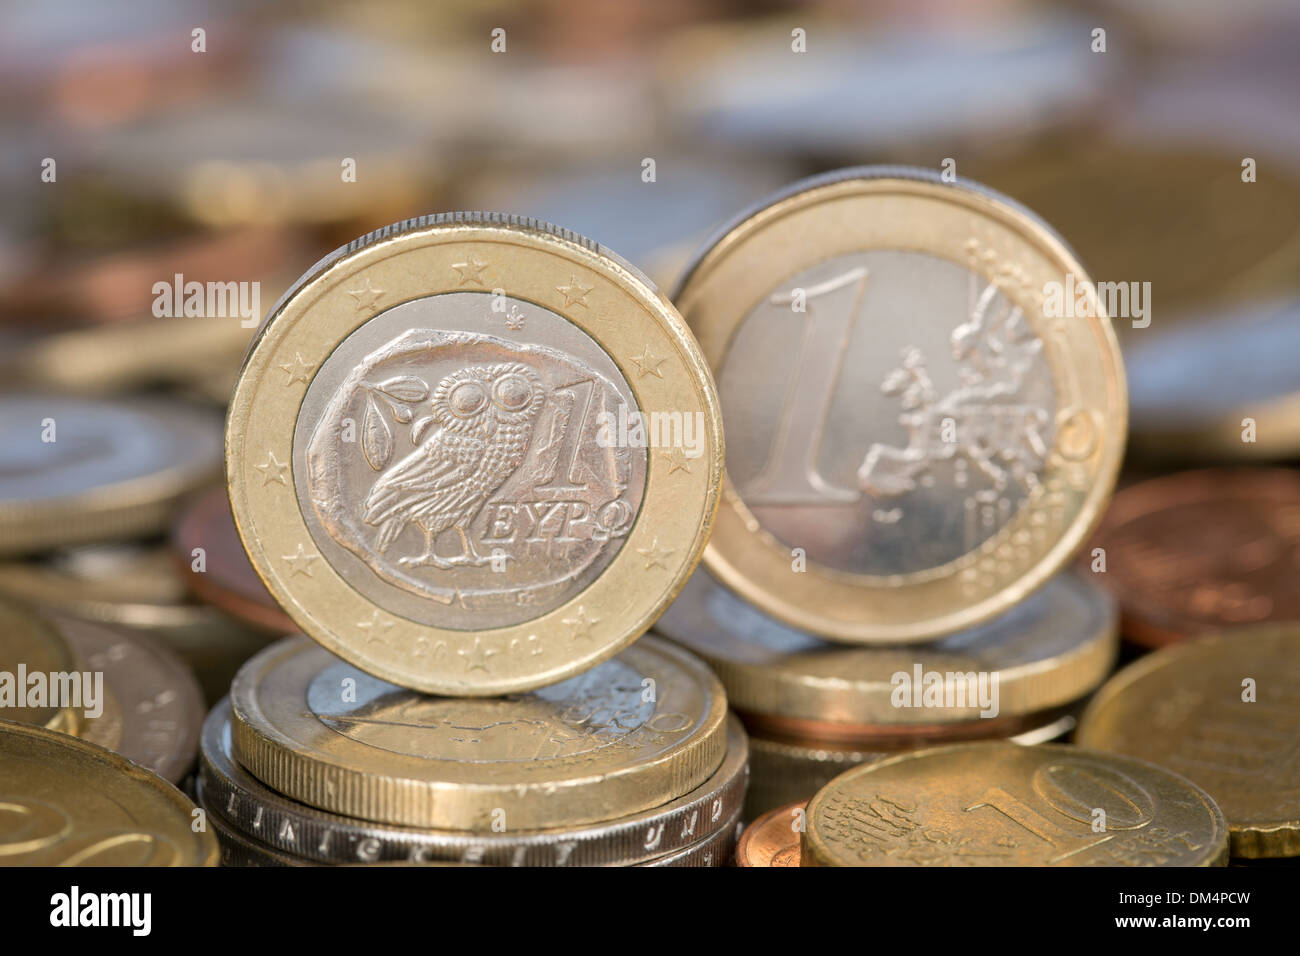 A one Euro coin from the EU member country Greece - Stock Image